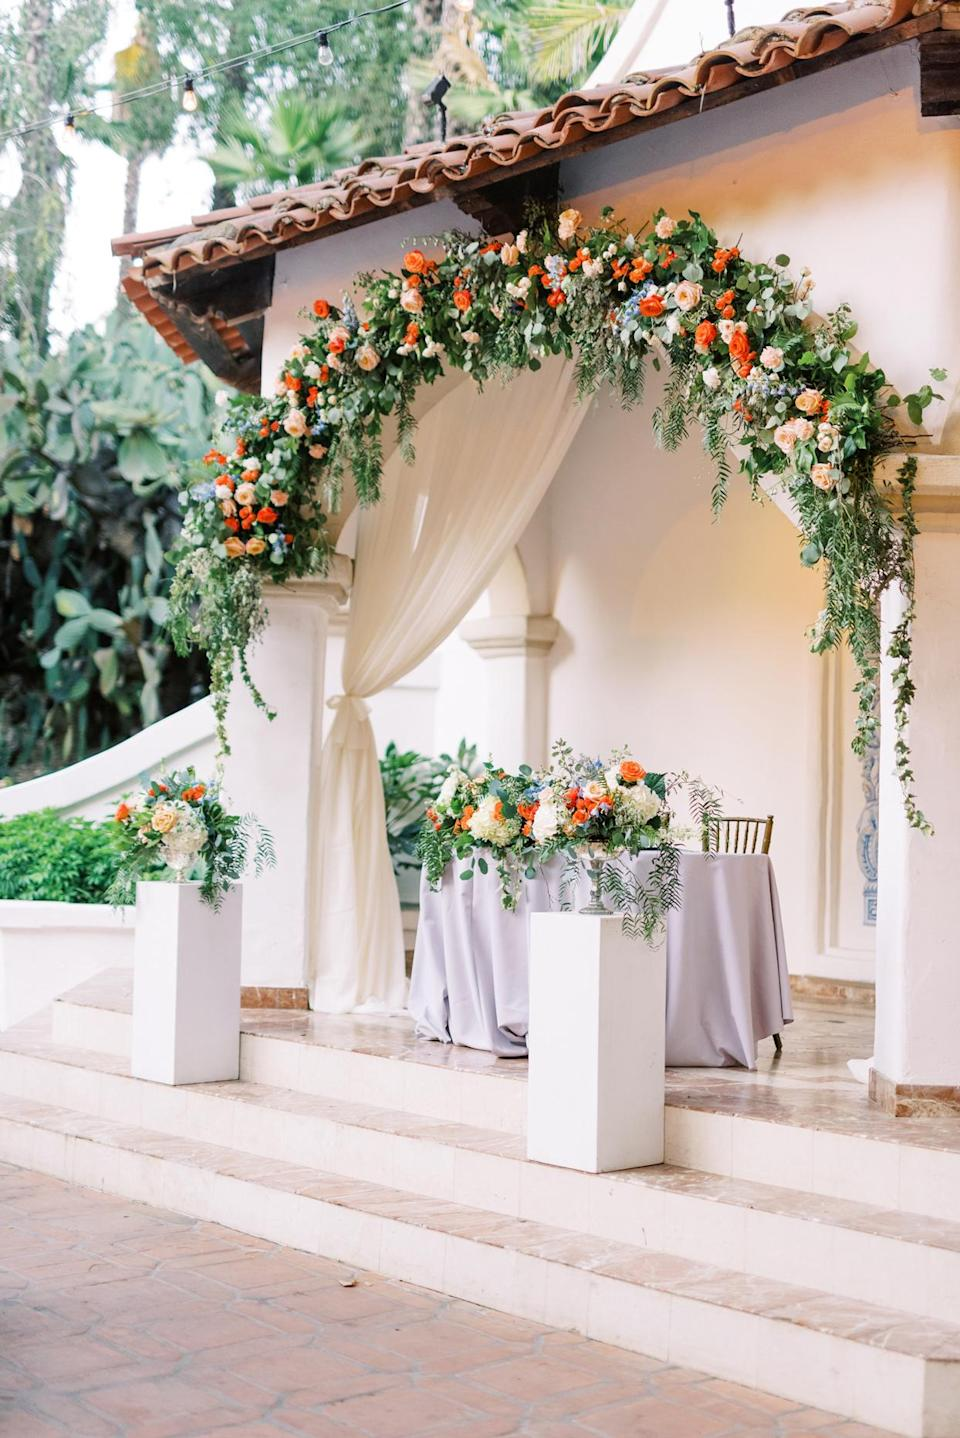 <p>During the reception, Ana and Charles sat at a sweetheart table—in the exact spot where they'd exchanged their promises just hours ago. Florals corresponding to the garland of blooms above were added to the edge of their station.</p>